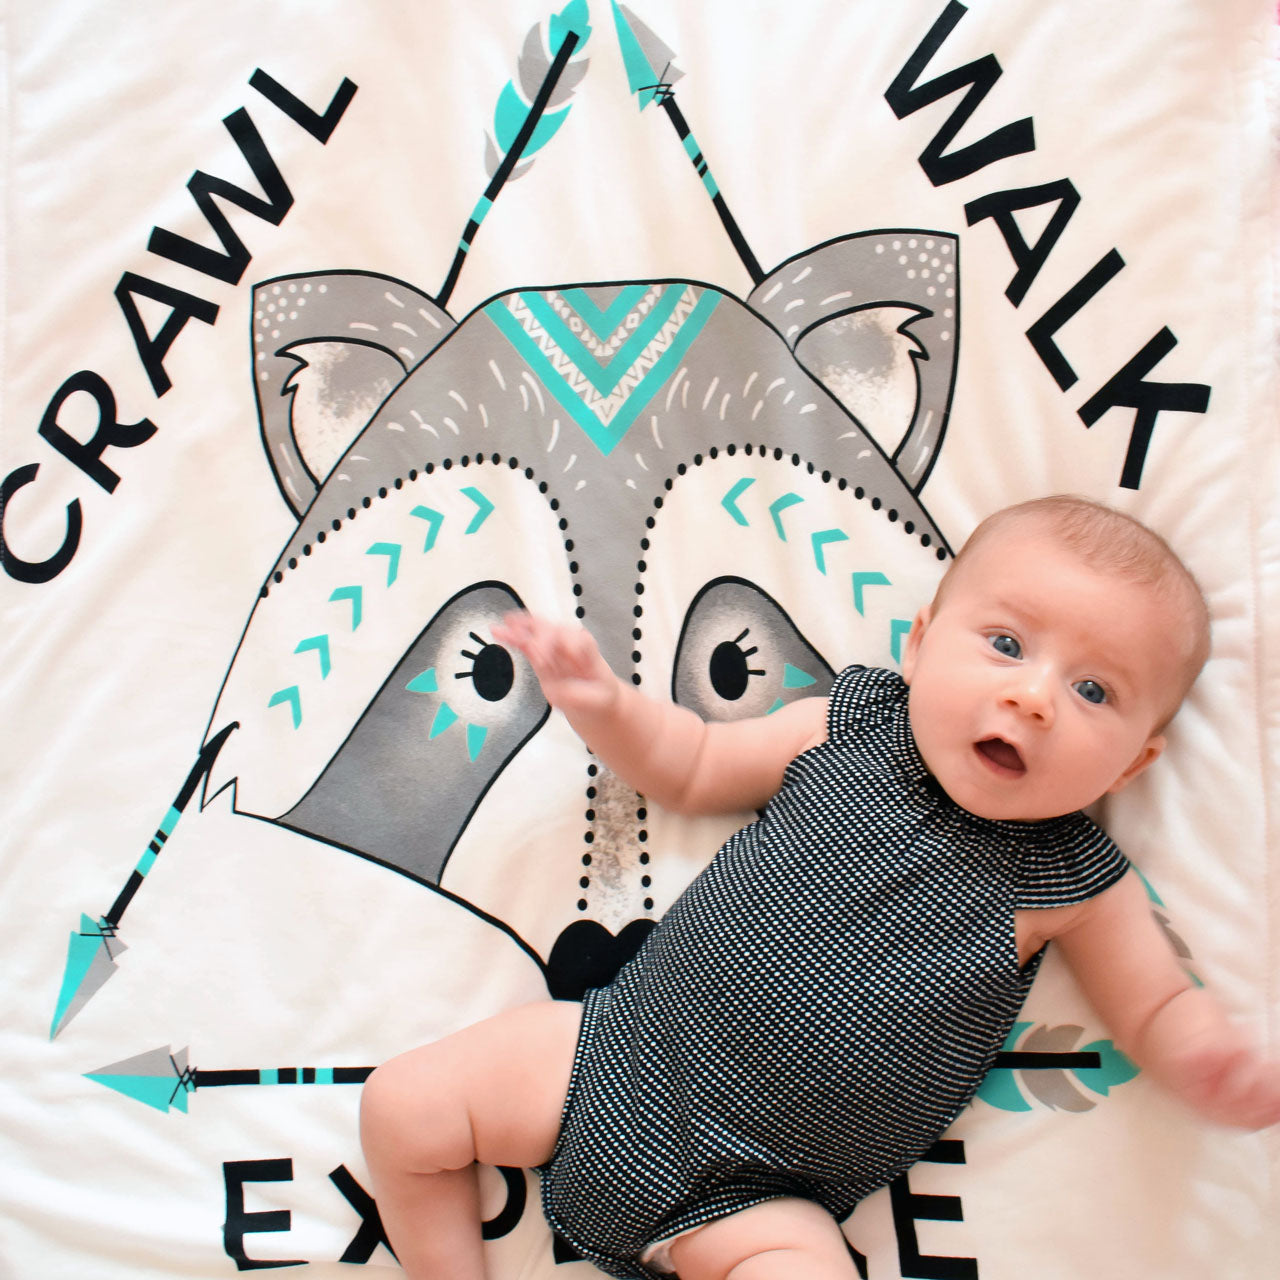 Baby girl on Crawl Walk Explore baby blanket